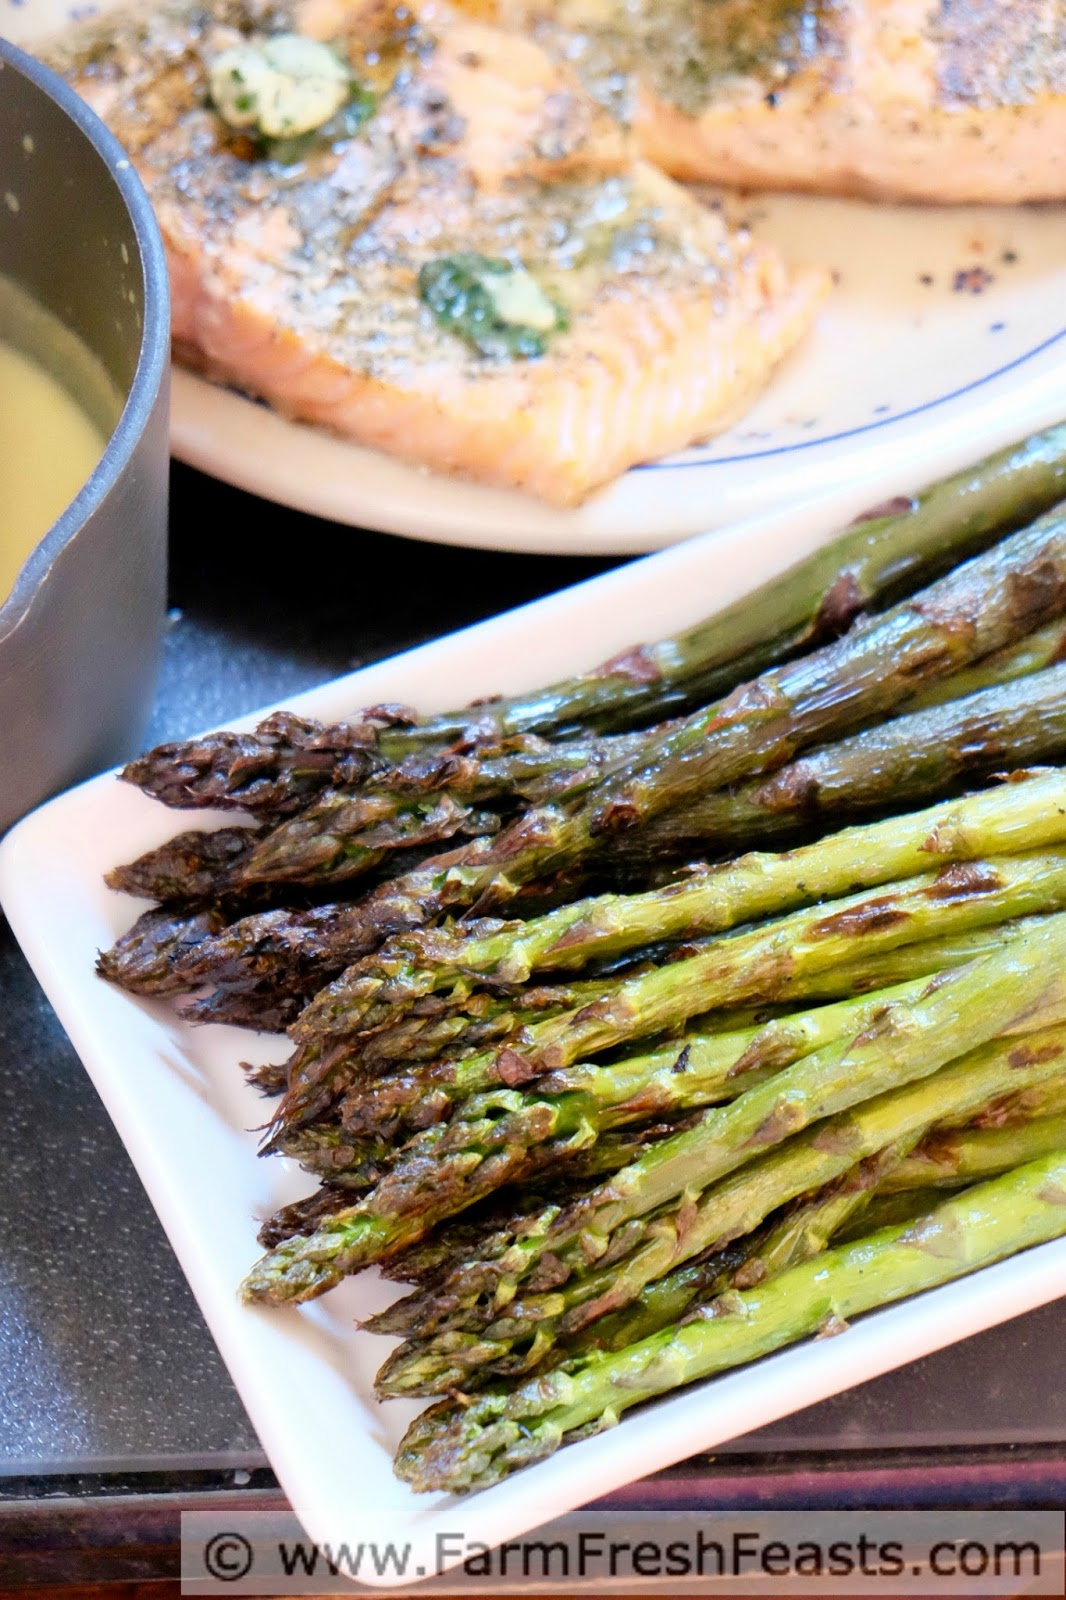 Use The Right Tools For The Job To Grill A Father's Day Meal Of Grilled  Asparagus